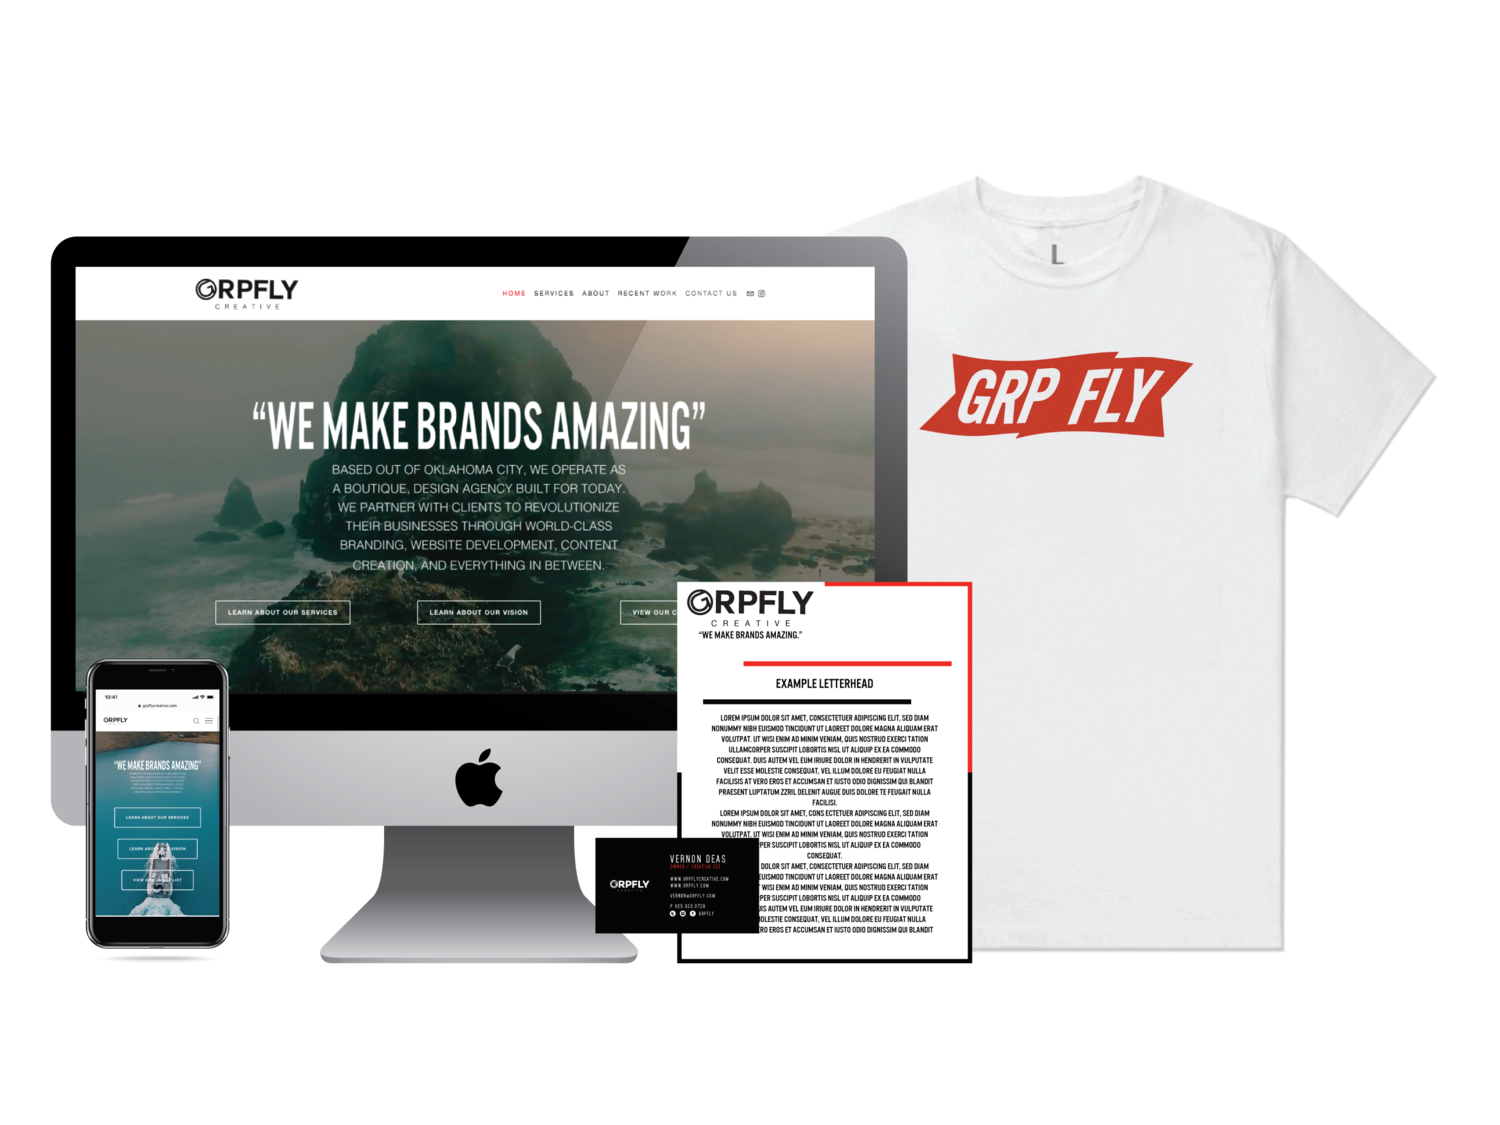 GRPFLY+Creative+Services+Branding+Website+Development+Content+Creation-01.png